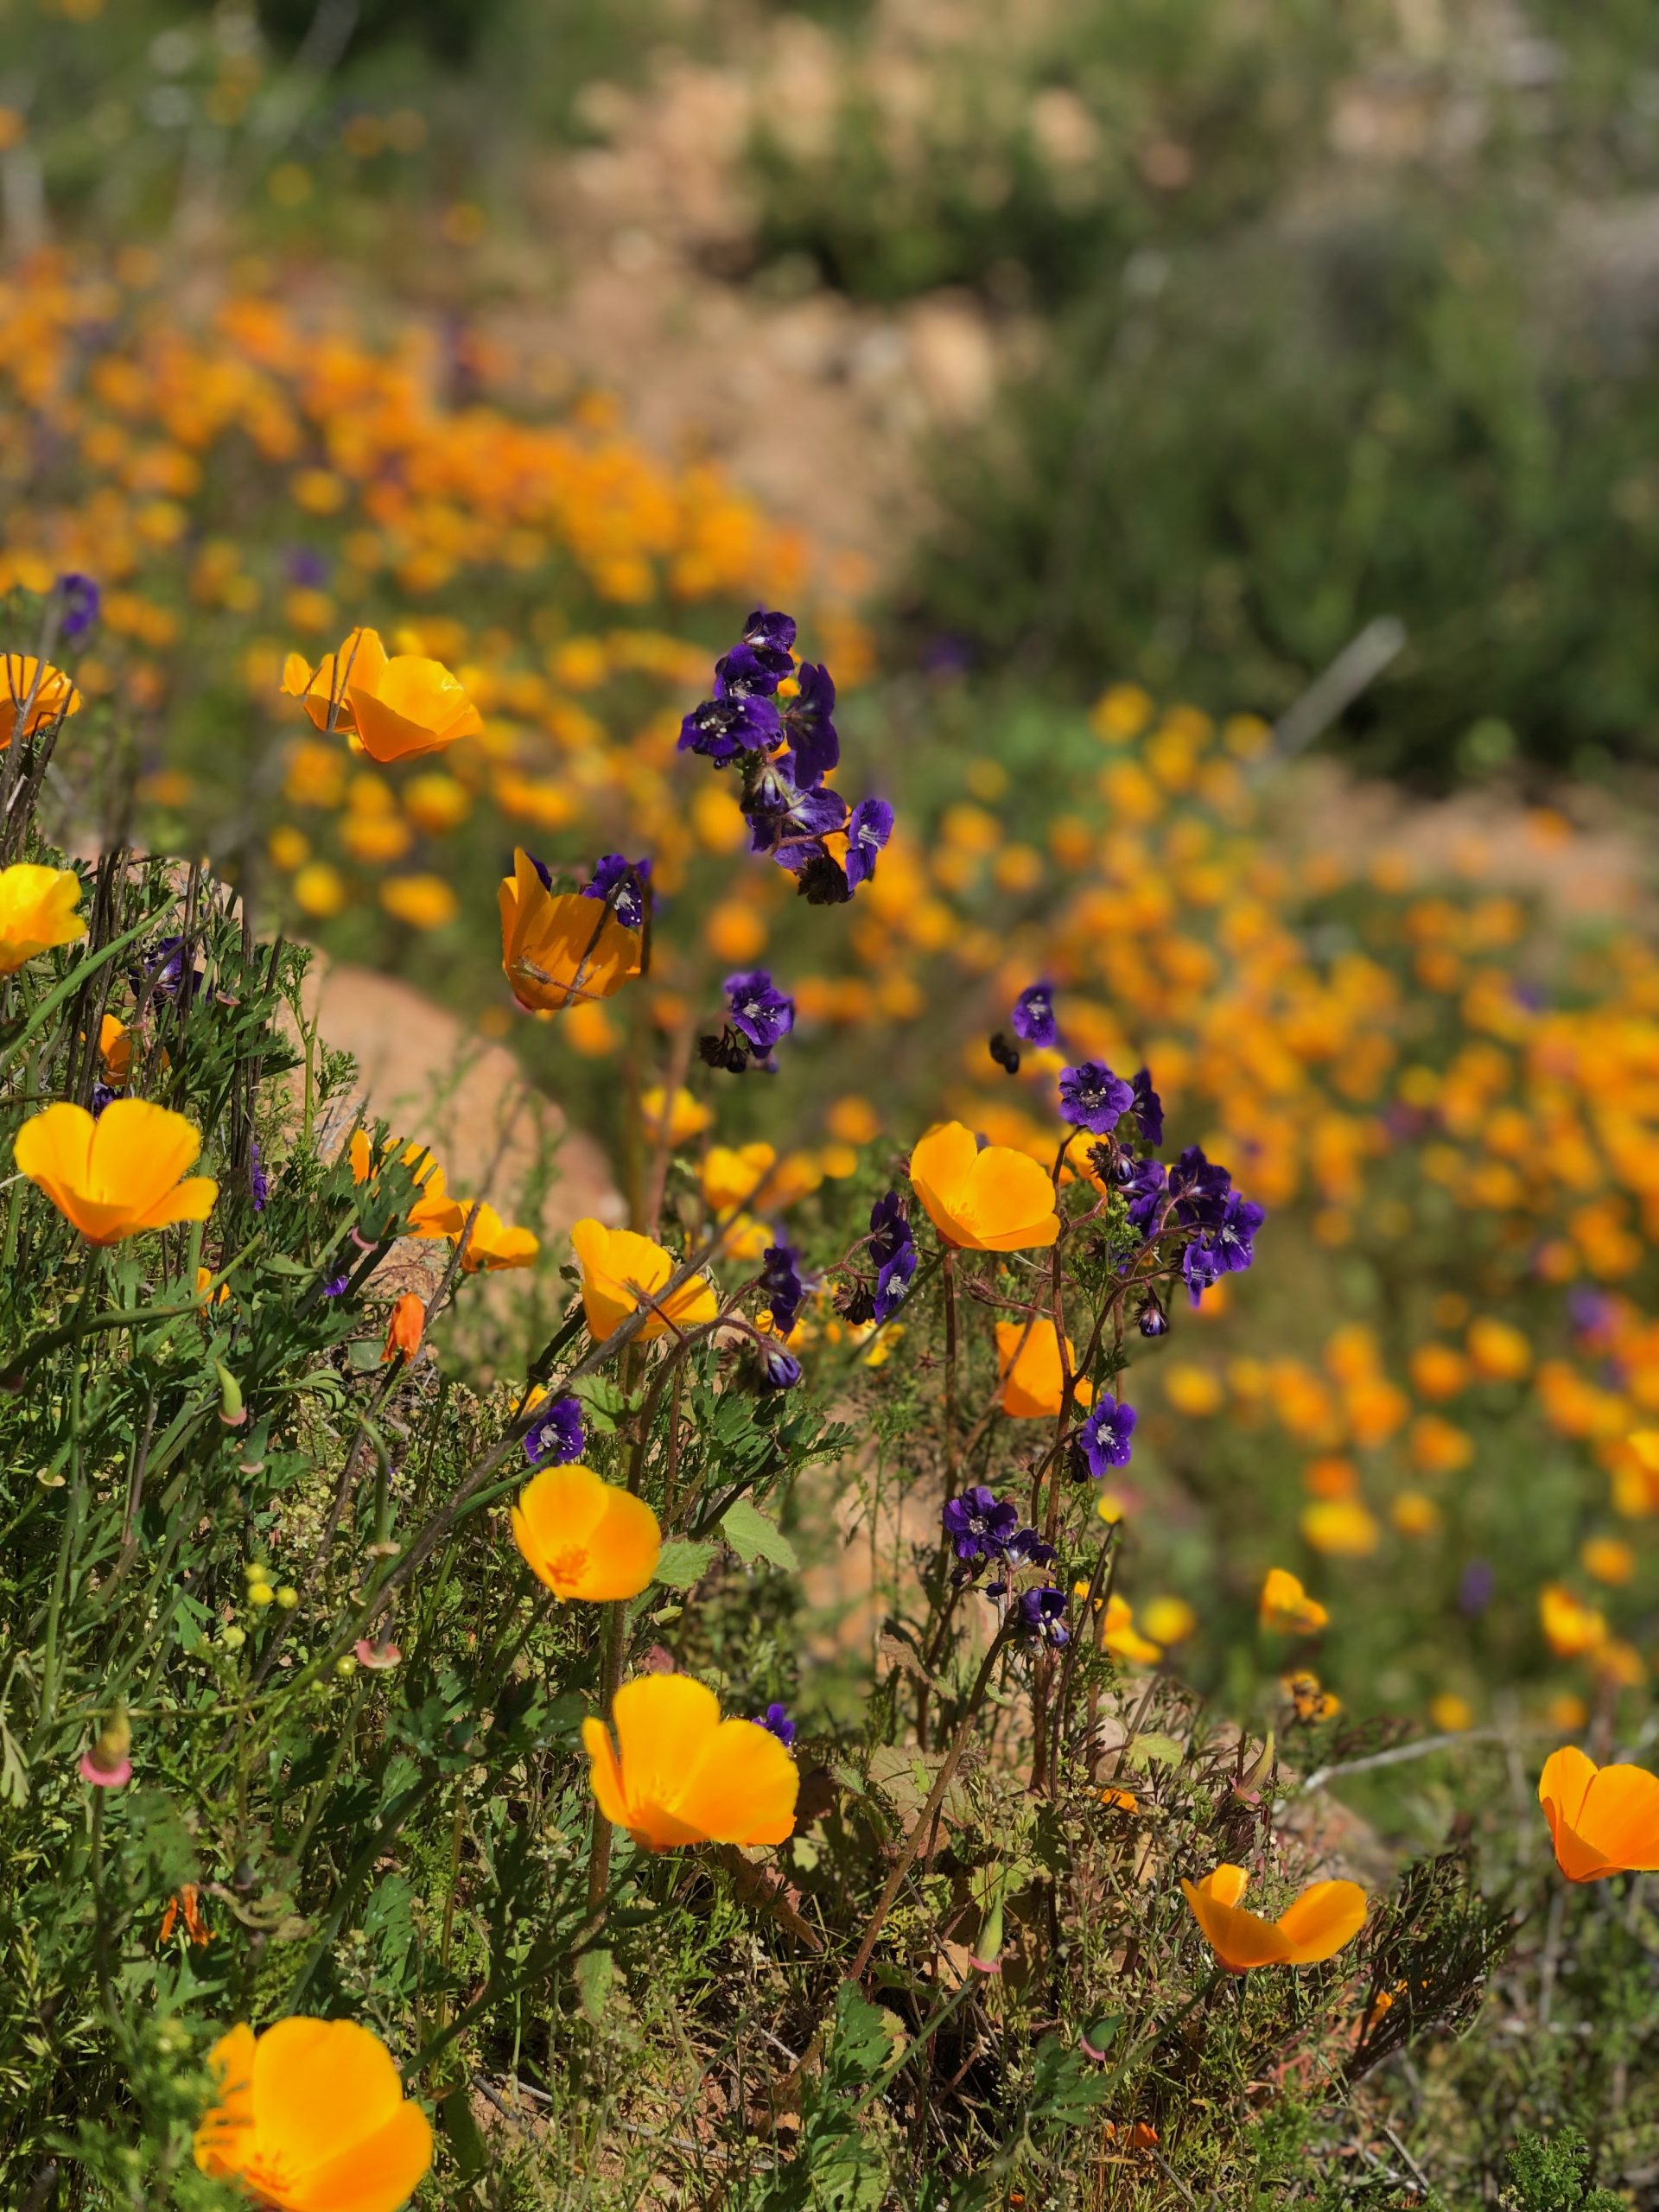 California poppies (Eschscholzia californica) and Parry's phacelia (Phacelia parryi) blanket a slope in the Biodiversity Reserve adjacent to the San Diego Zoo Safari Park.